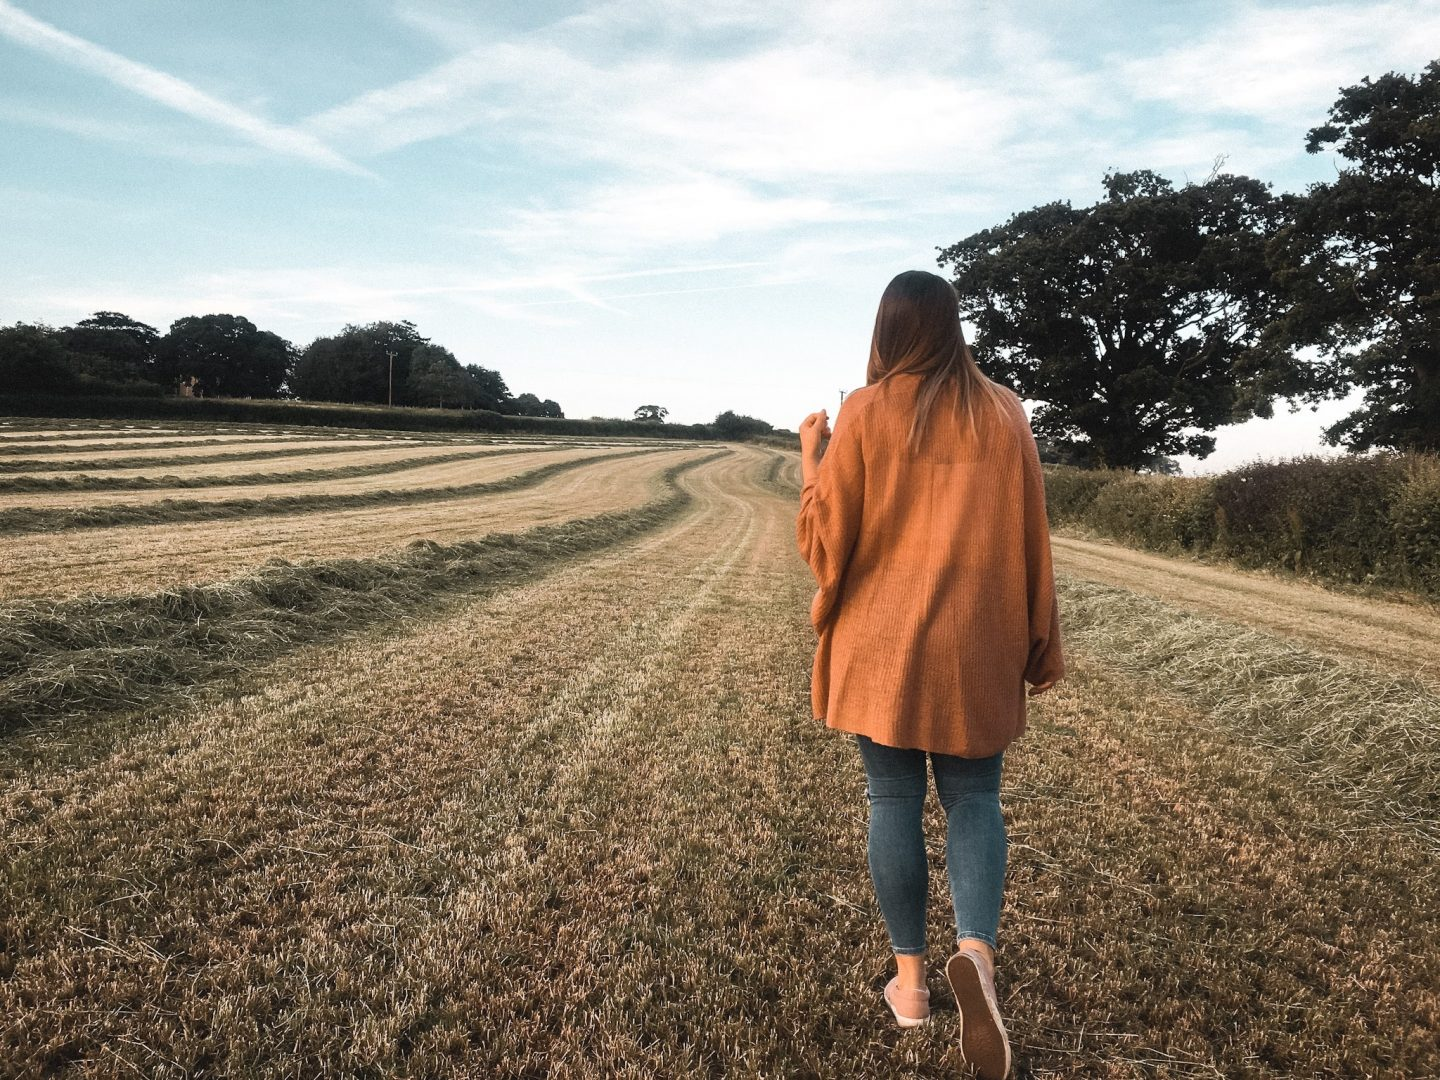 Girl walking in field during summer